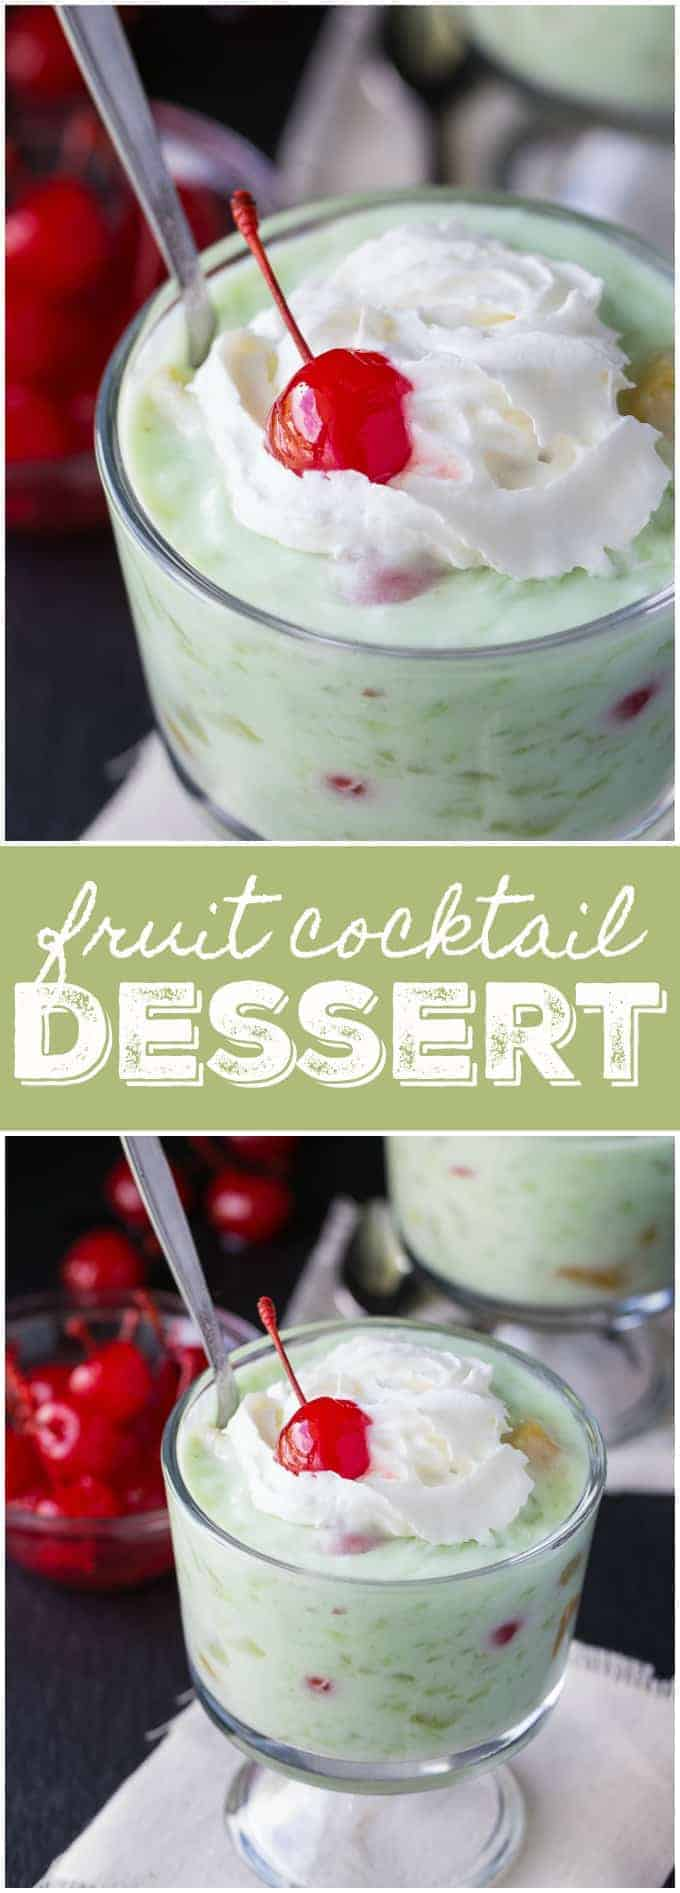 Fruit Cocktail Dessert - Creamy, sweet and full of yummy fruit flavour!